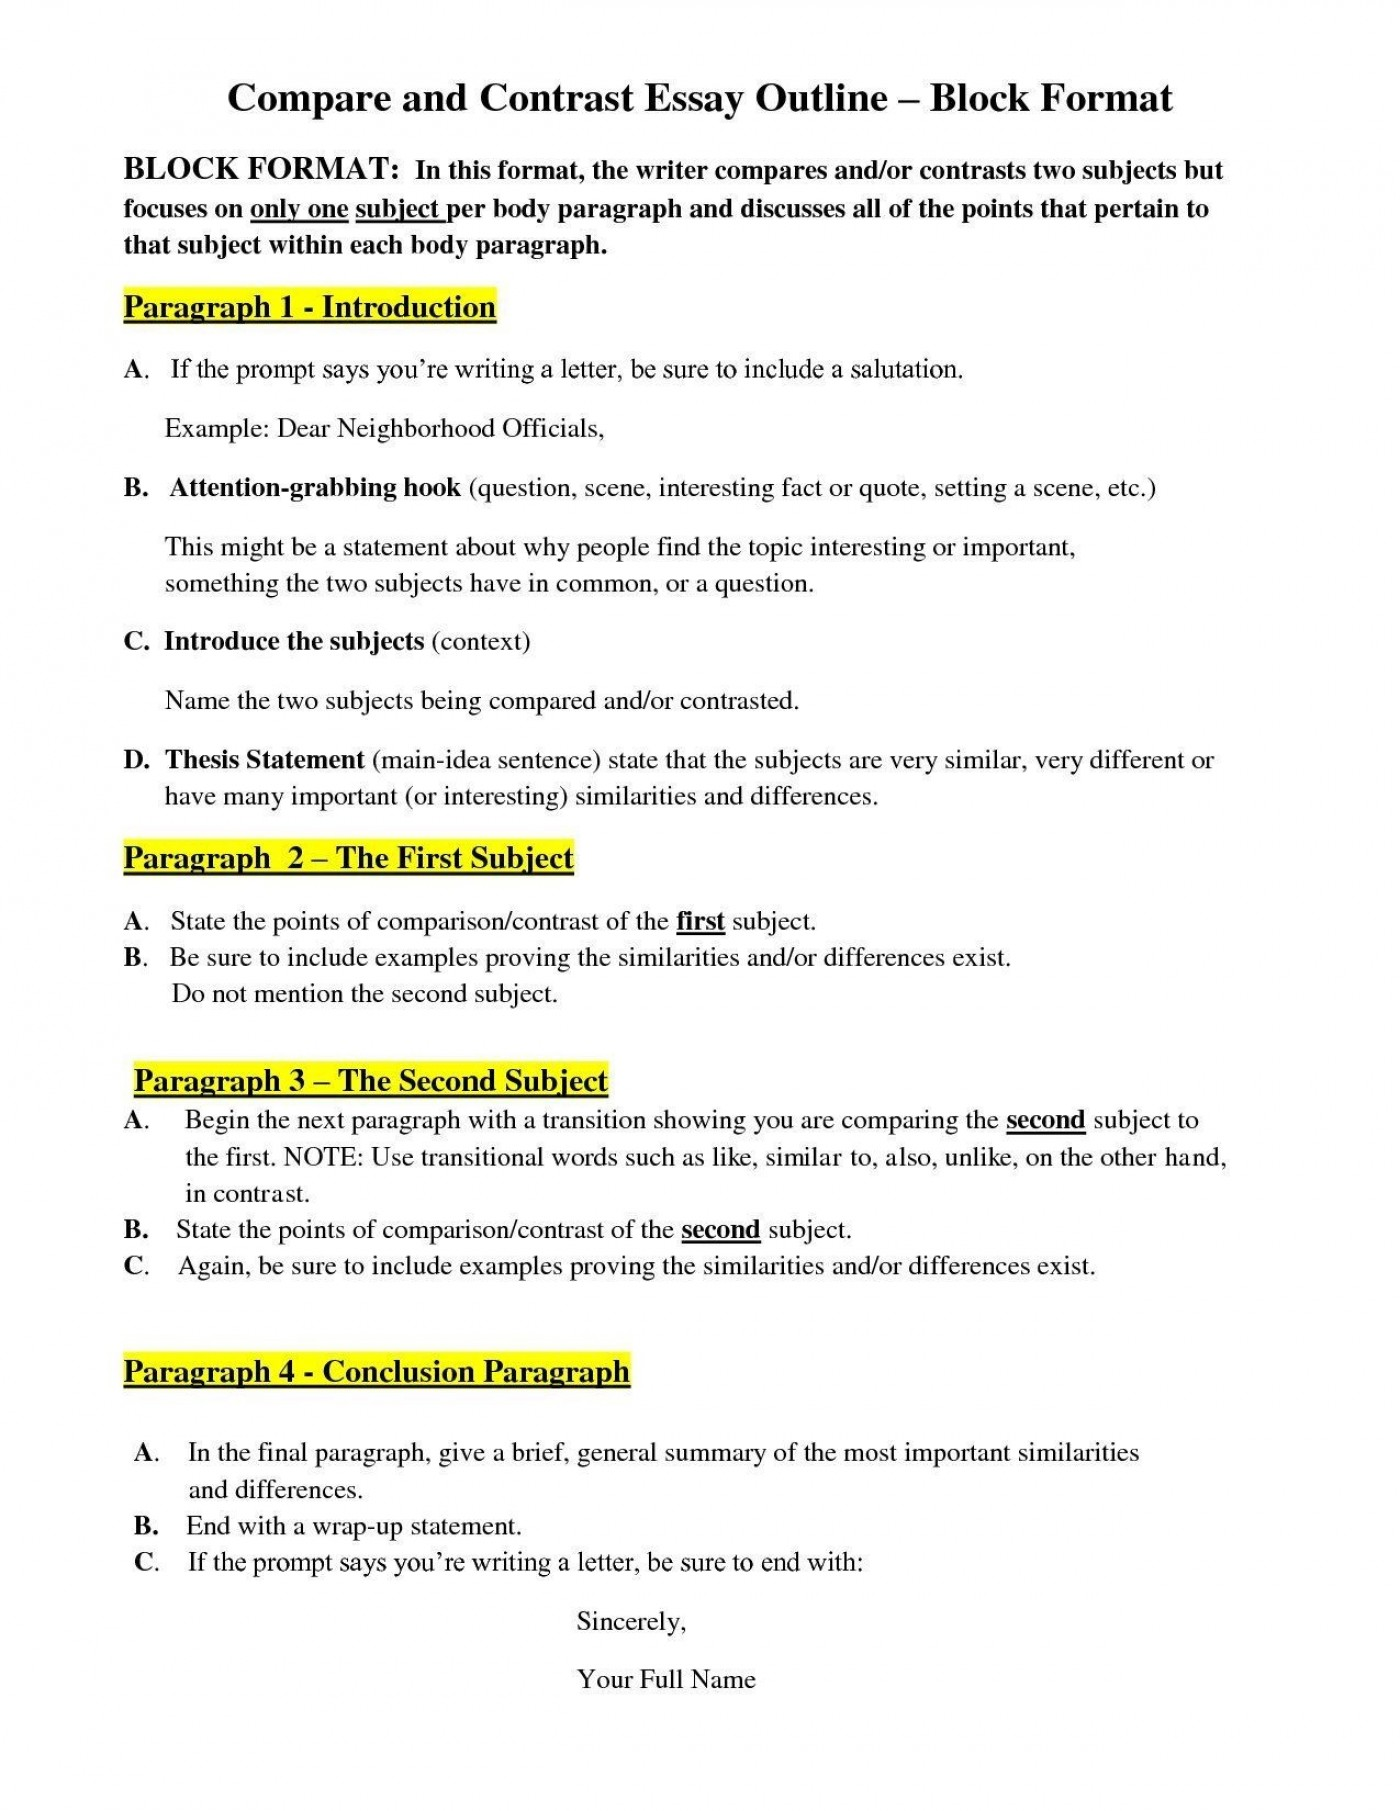 014 Essay Examplempare Andntrastmparison Best Examples Of Scenario In 6th Grade An Goo 3rd Food 5th Middle School Block Format Pdf High 4th Vs Striking Compare And Contrast Example Fourth 7th 1400